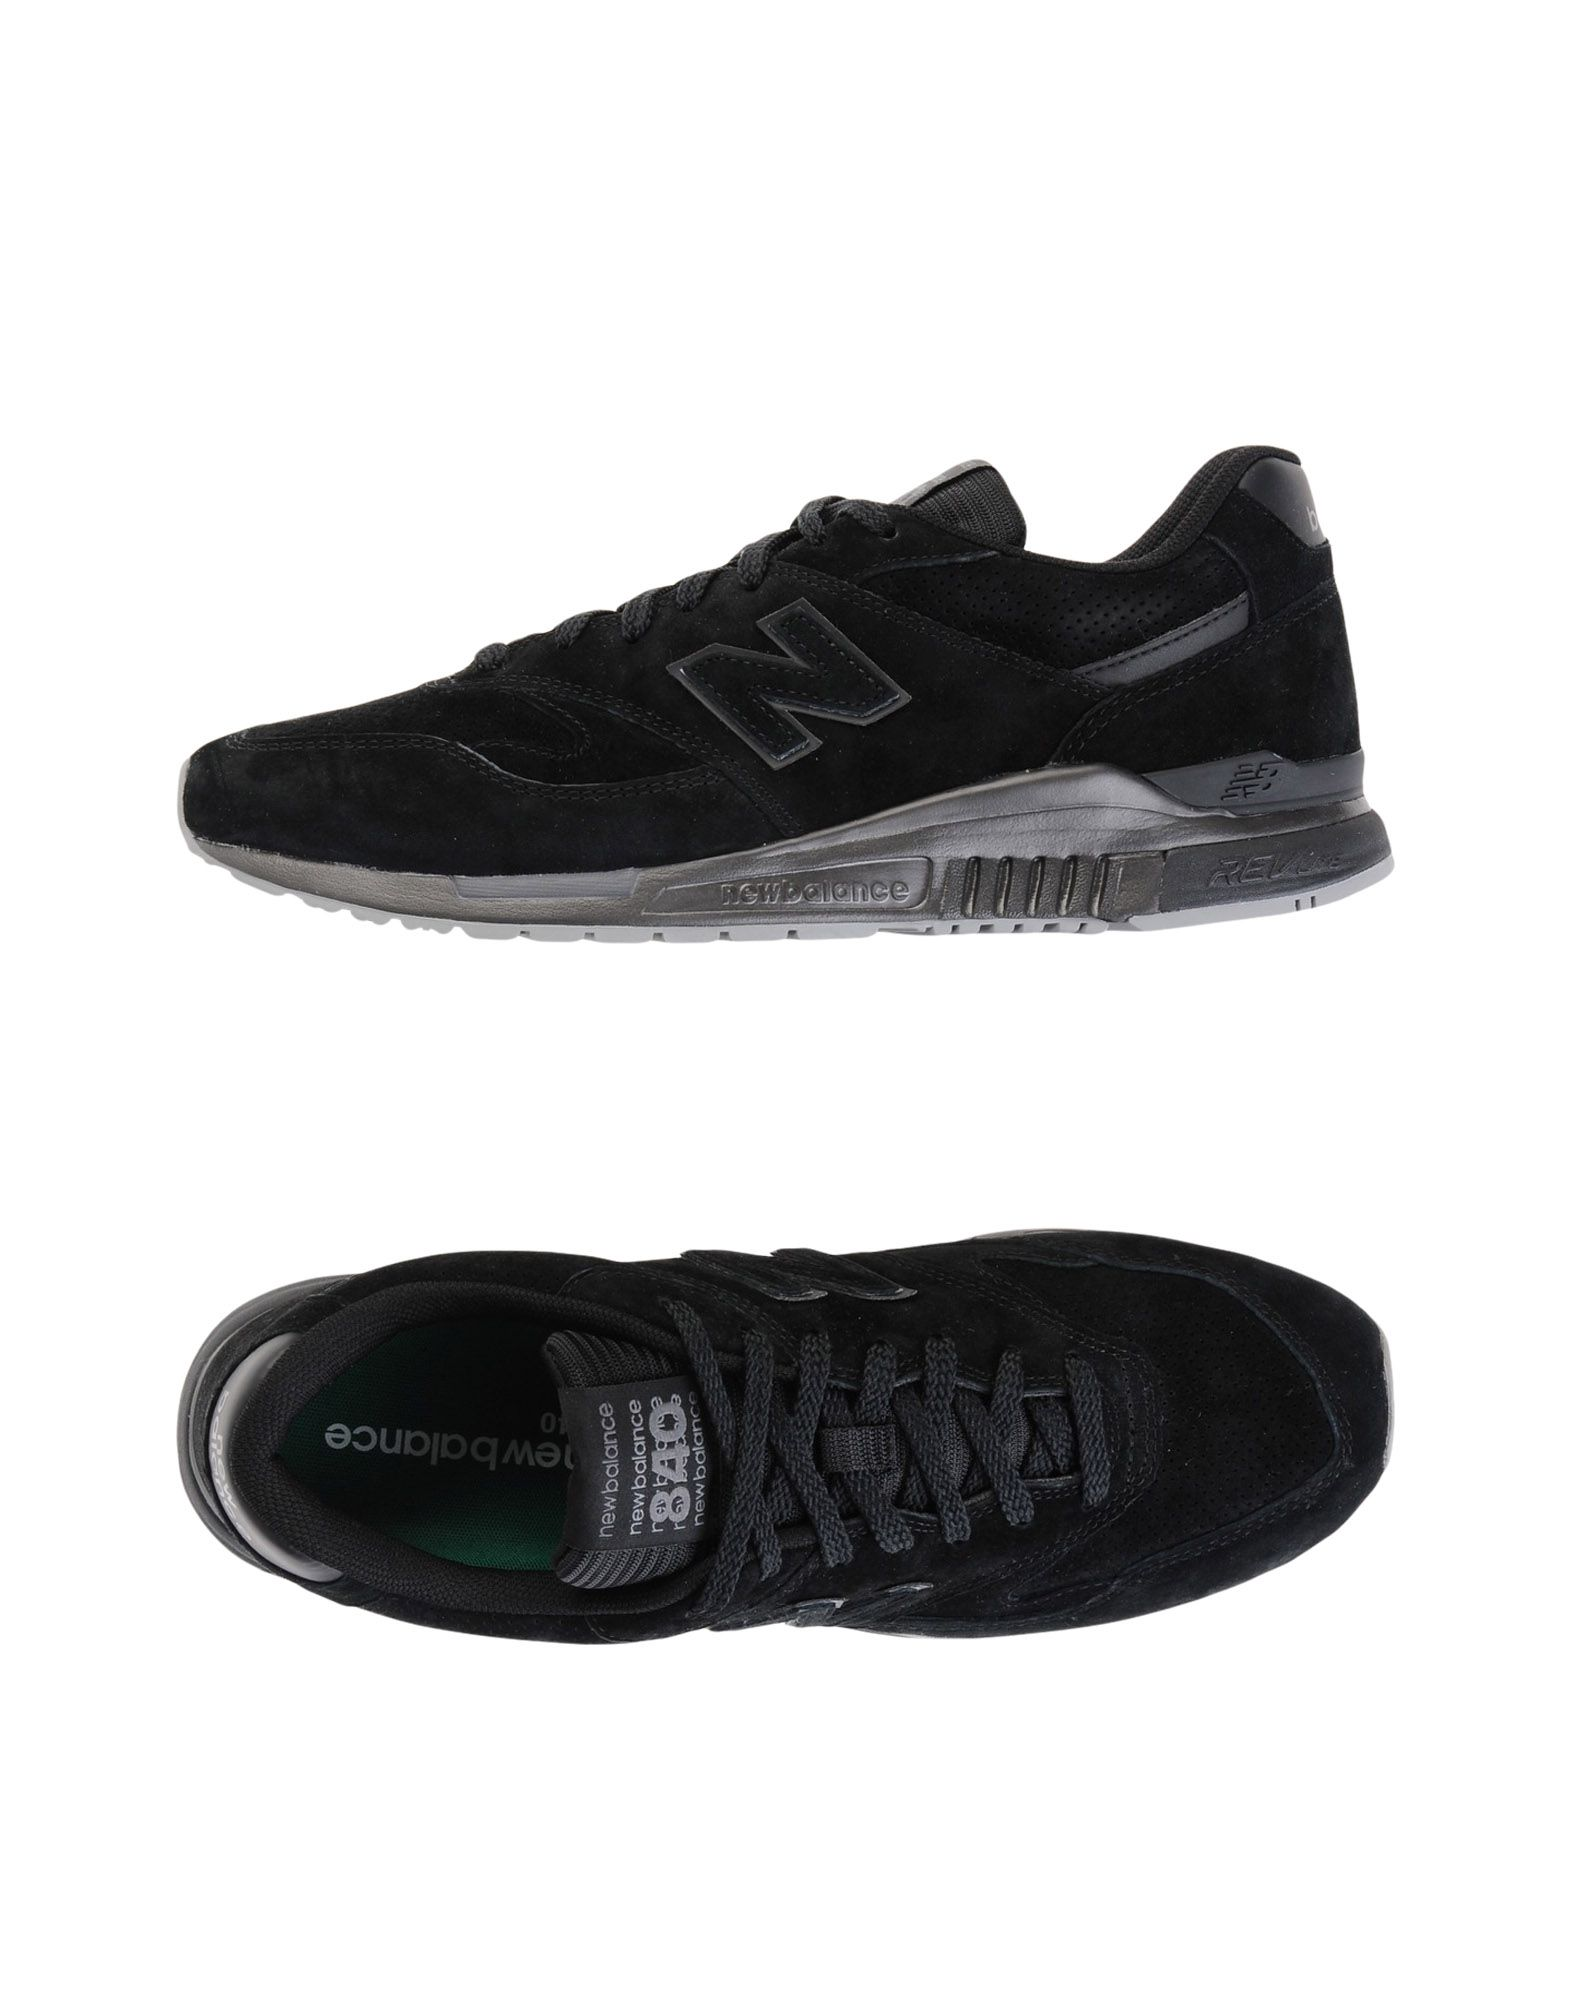 Sneakers New Balance 840 Luxe Suede - Uomo - 11467054BK